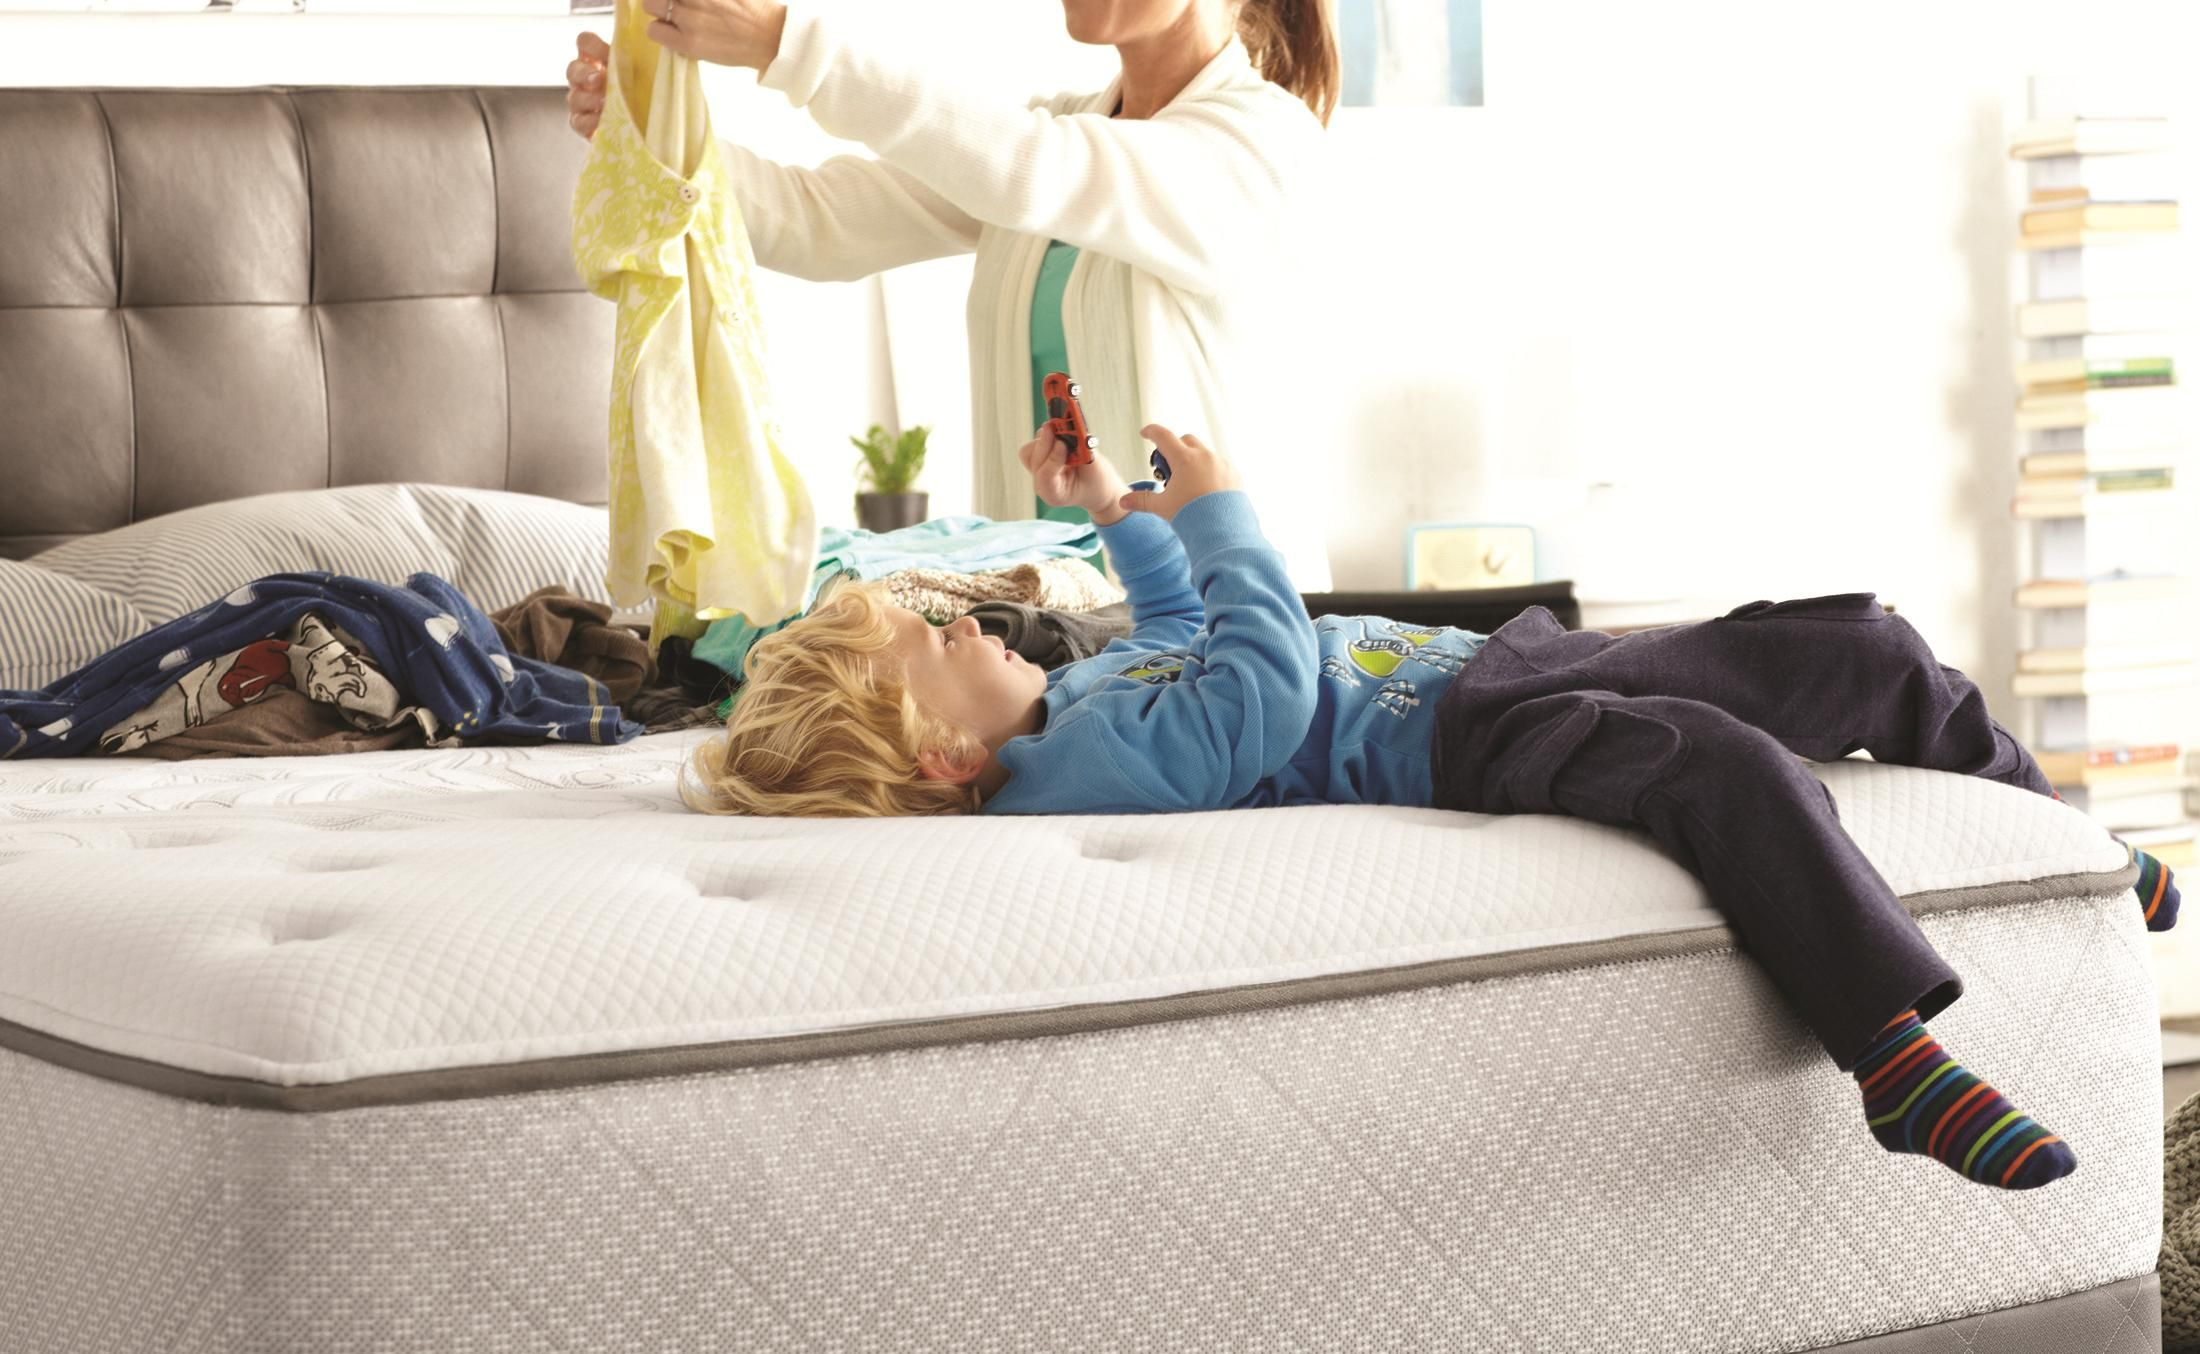 save on sealya mattresses at turk furniture in bradley il